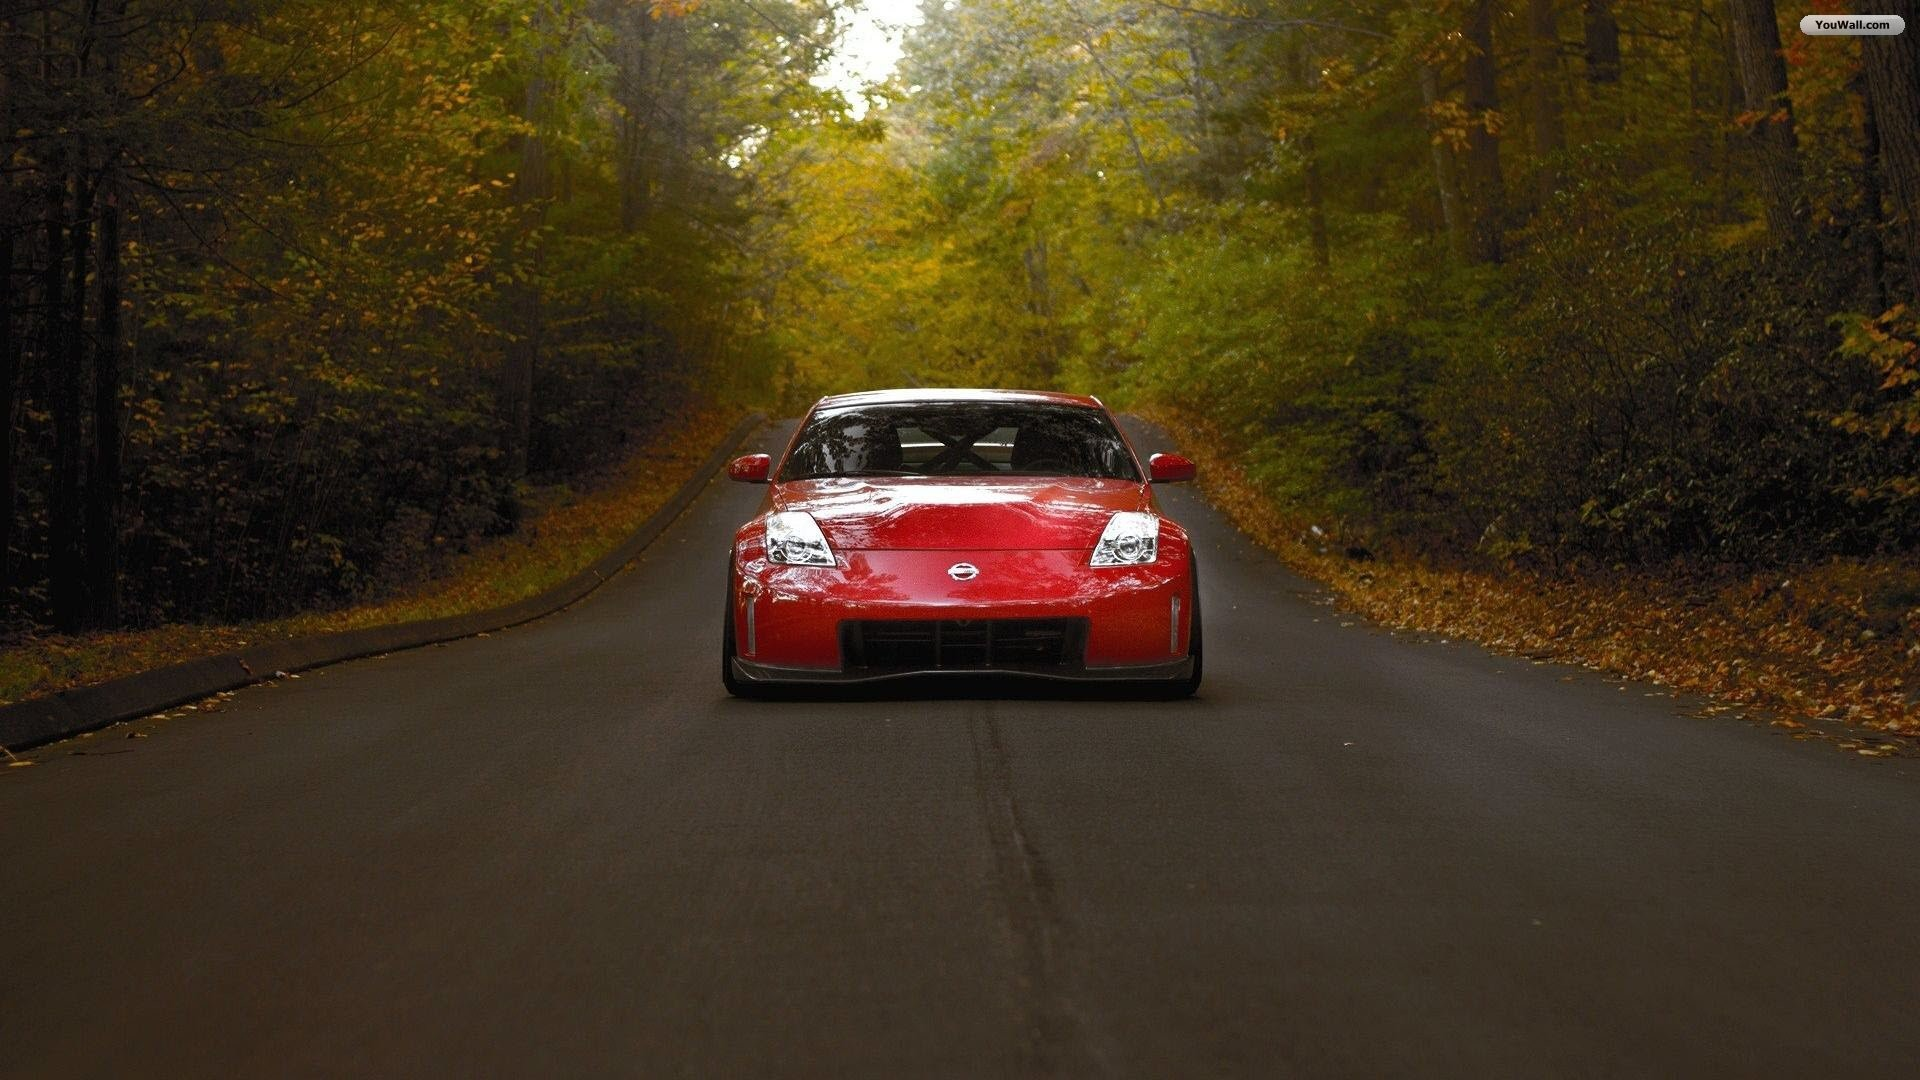 1920x1080 Red Nissan 350Z Wallpaper